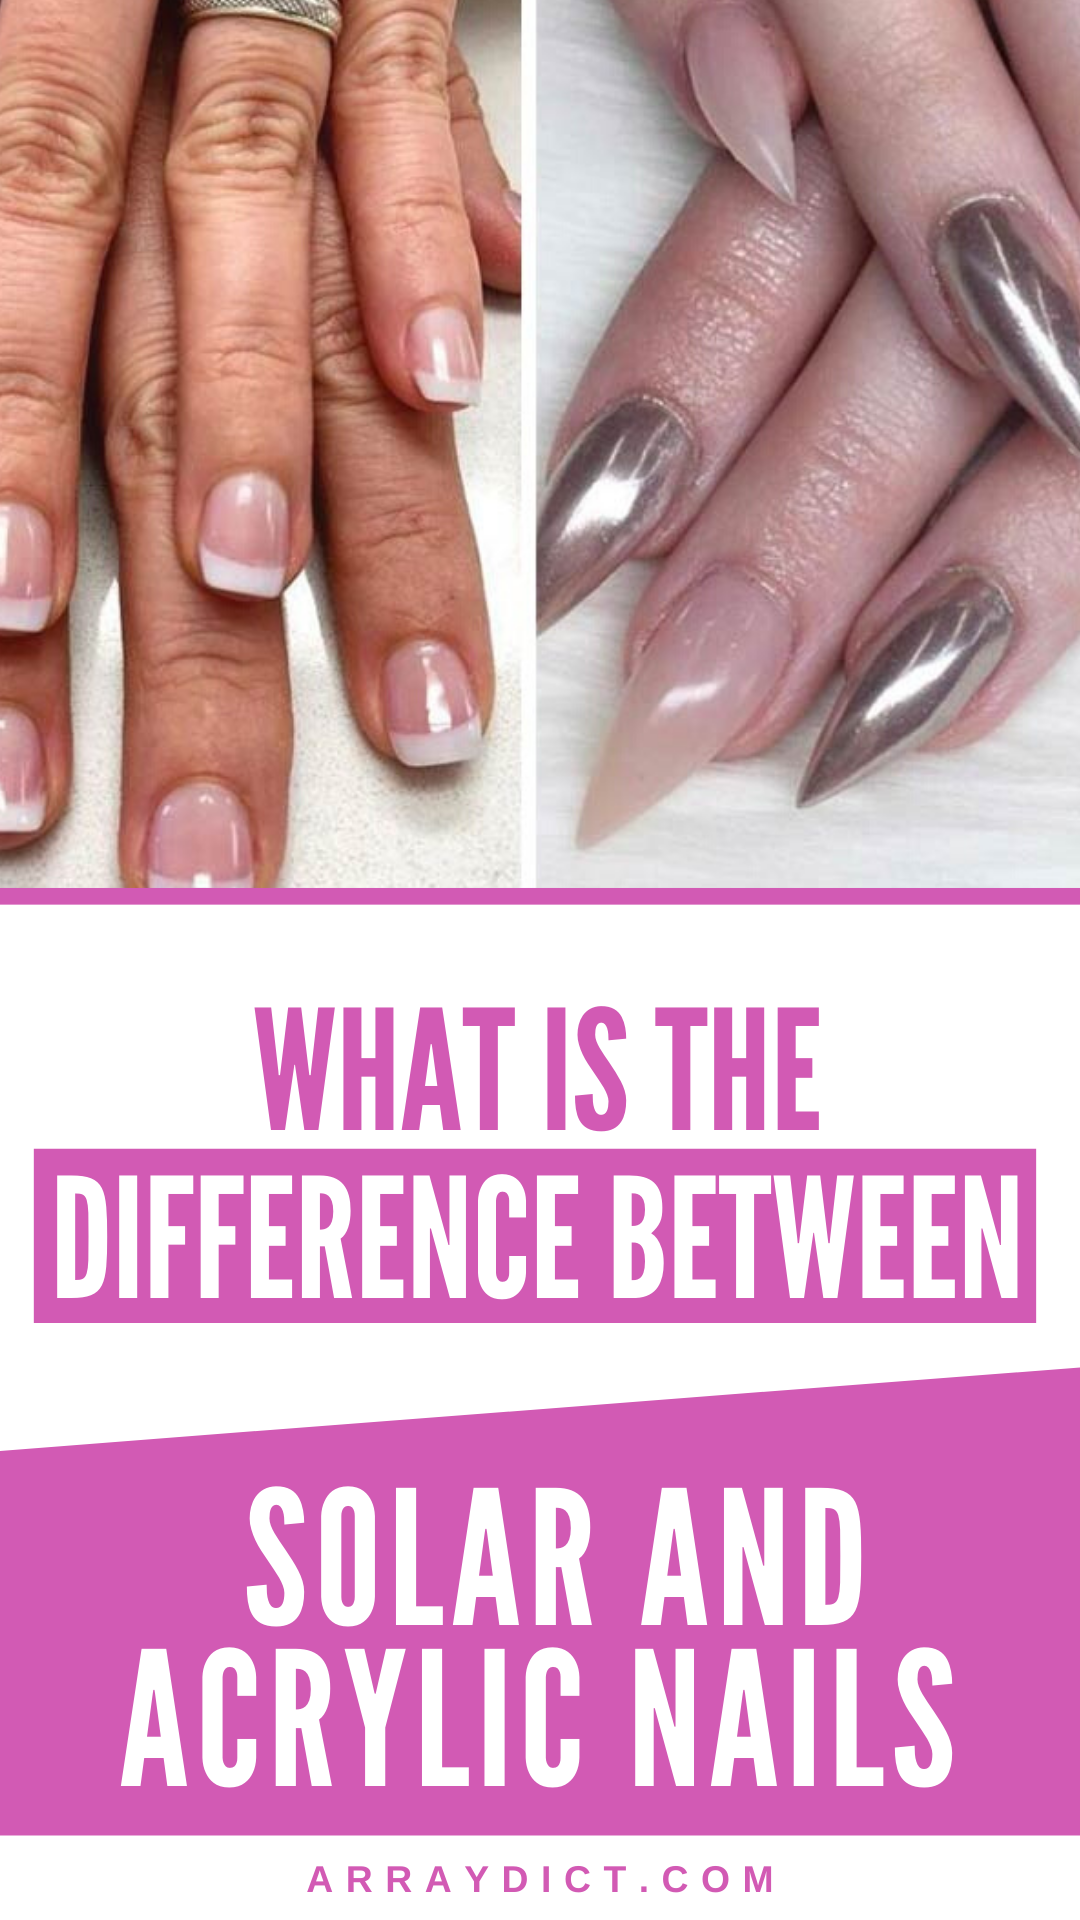 What Is The Difference Between Solar And Acrylic Nails In 2020 Solar Nails Acrylic Nails Nails